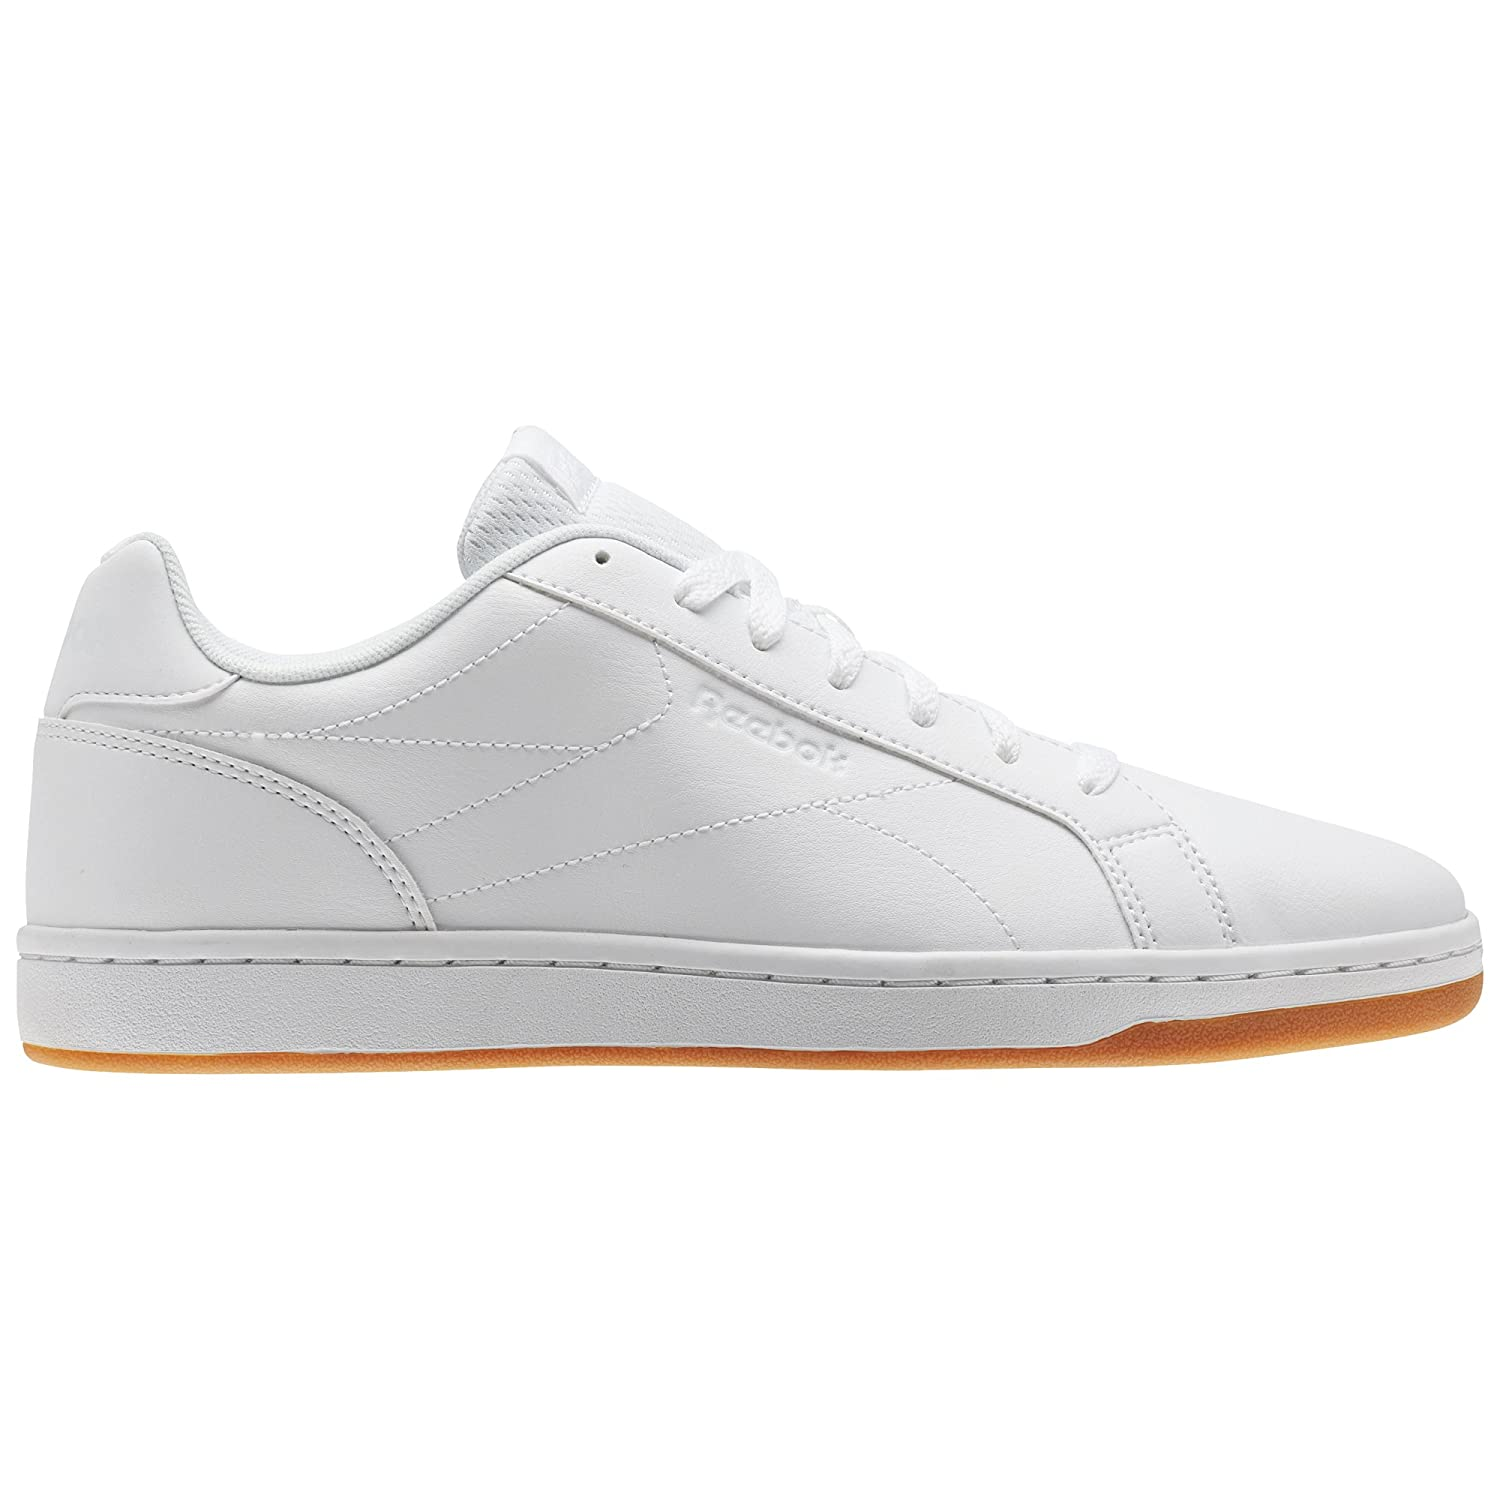 d32d236dd57d7 White White Gum Reebok Classic Men's Royal Complete Clean shoes ...